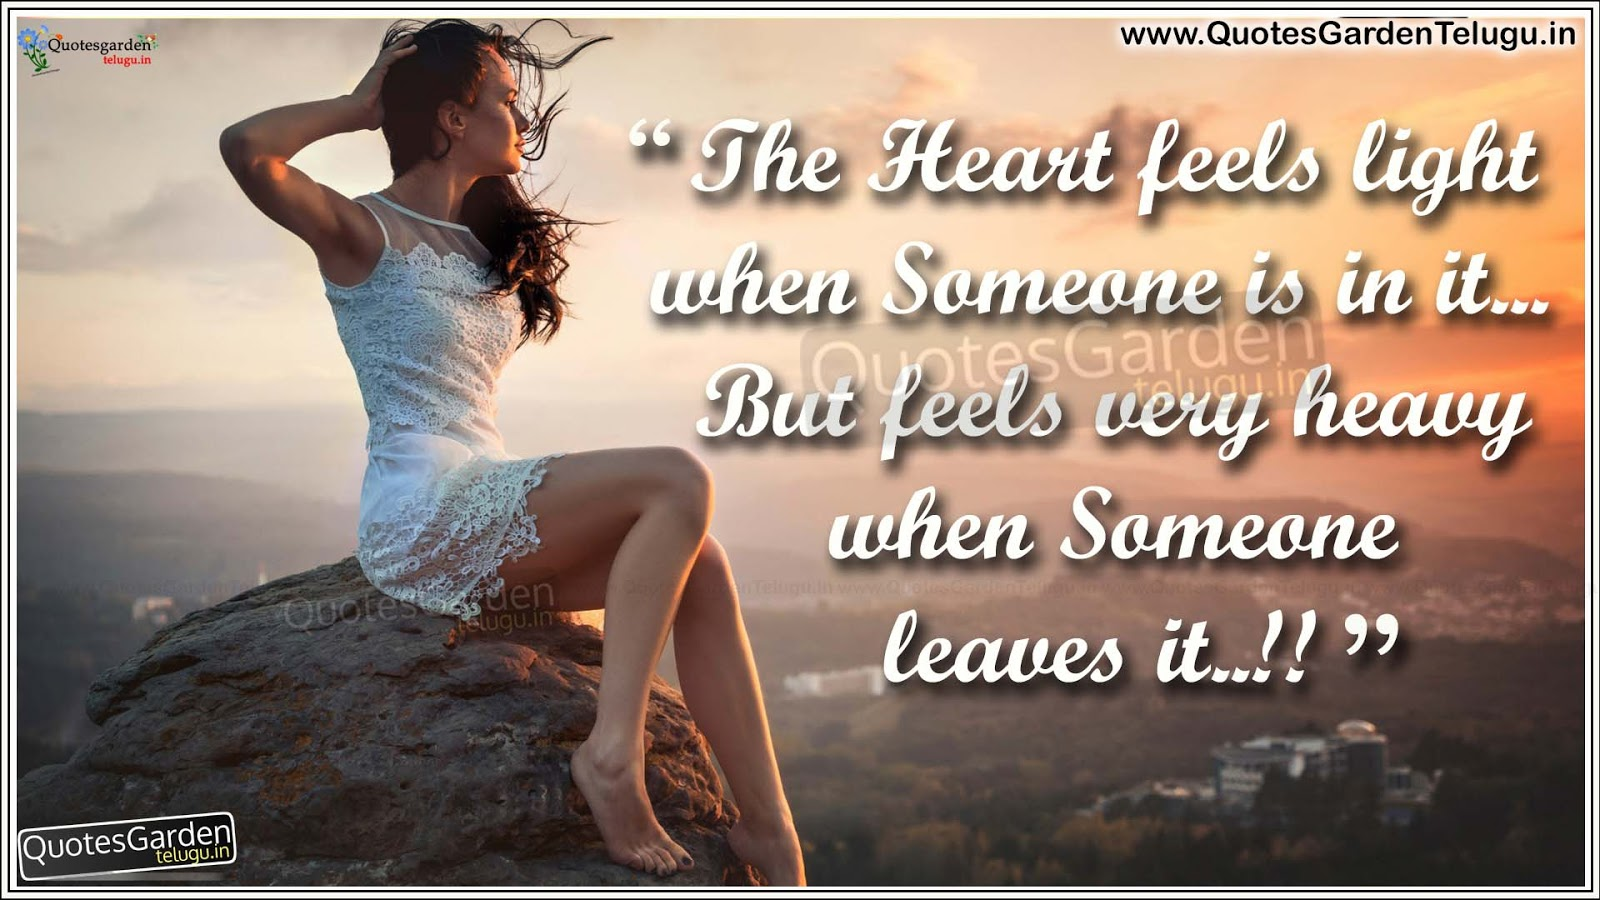 Heart touching Love Quotes HD love wallpapers QUOTES GARDEN TELUGU Telugu Quotes English ...